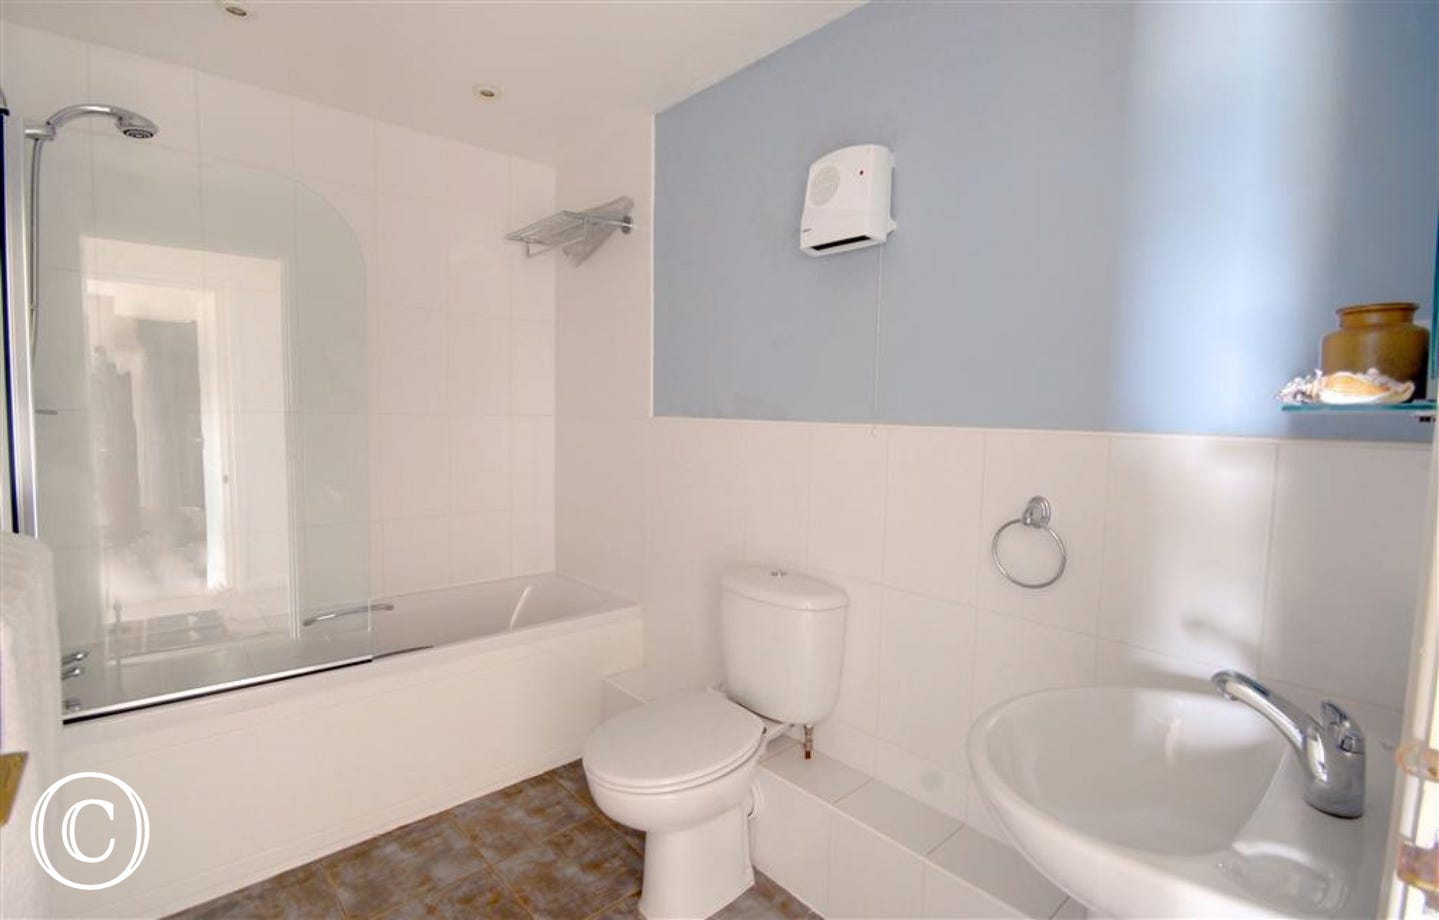 The separate bathroom serves the Twin bedroom.